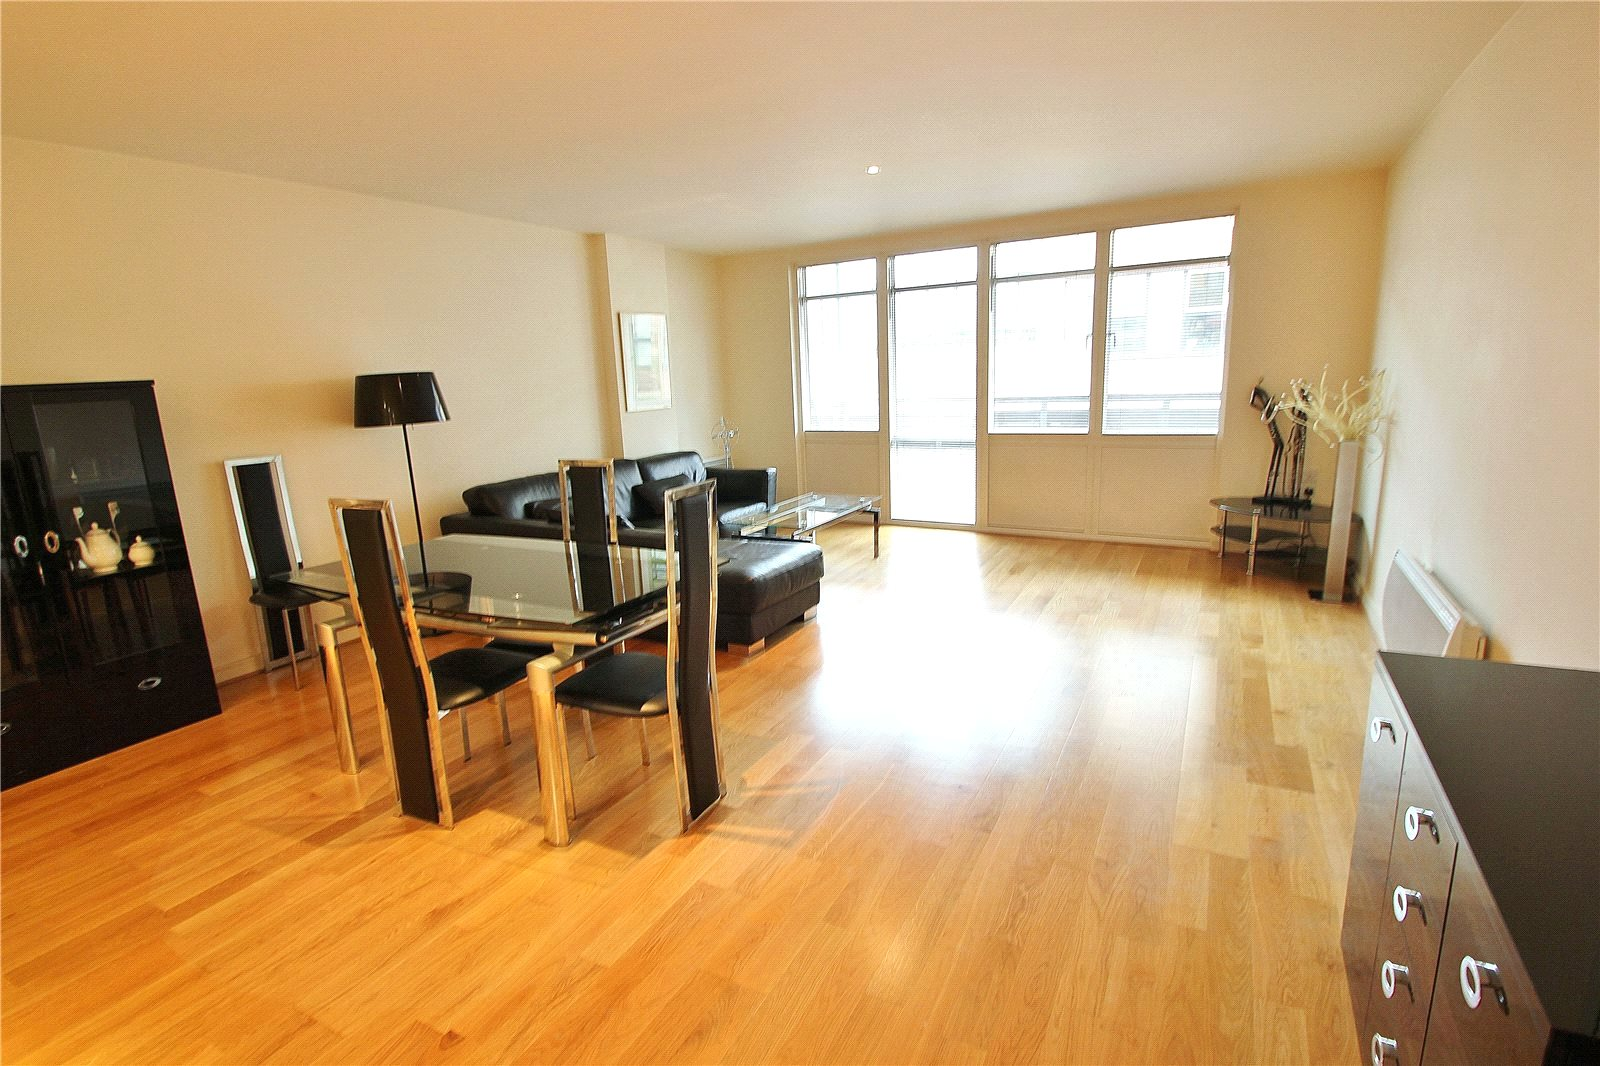 Cj Hole Clifton 2 Bedroom Flat For Sale In Thomas Lane